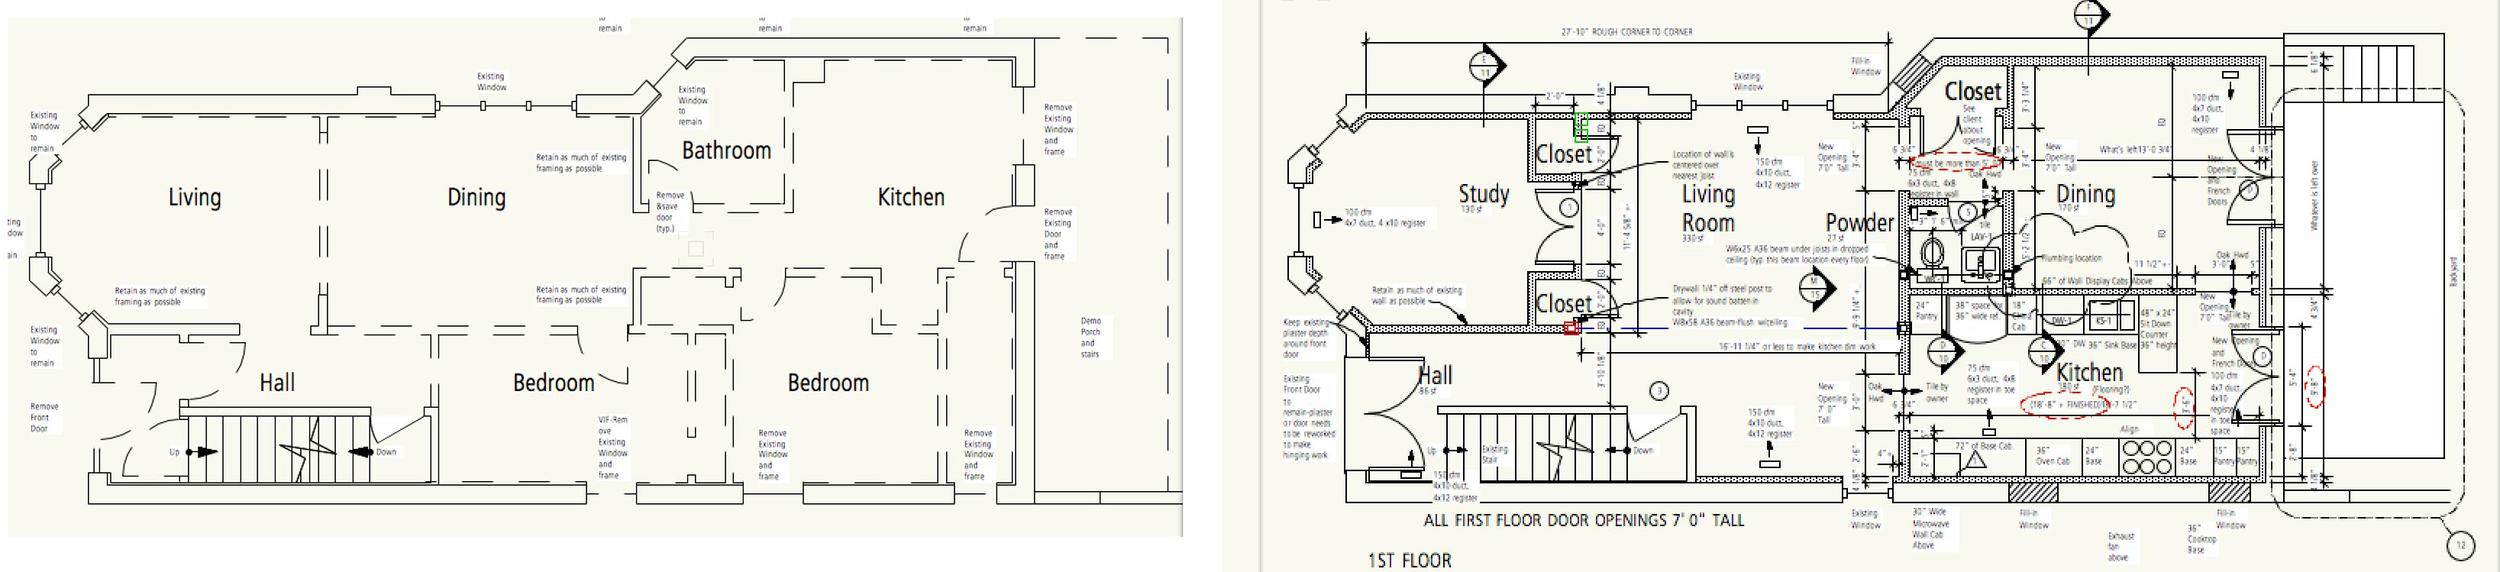 Demo plan on the left and the construction plan on the right.